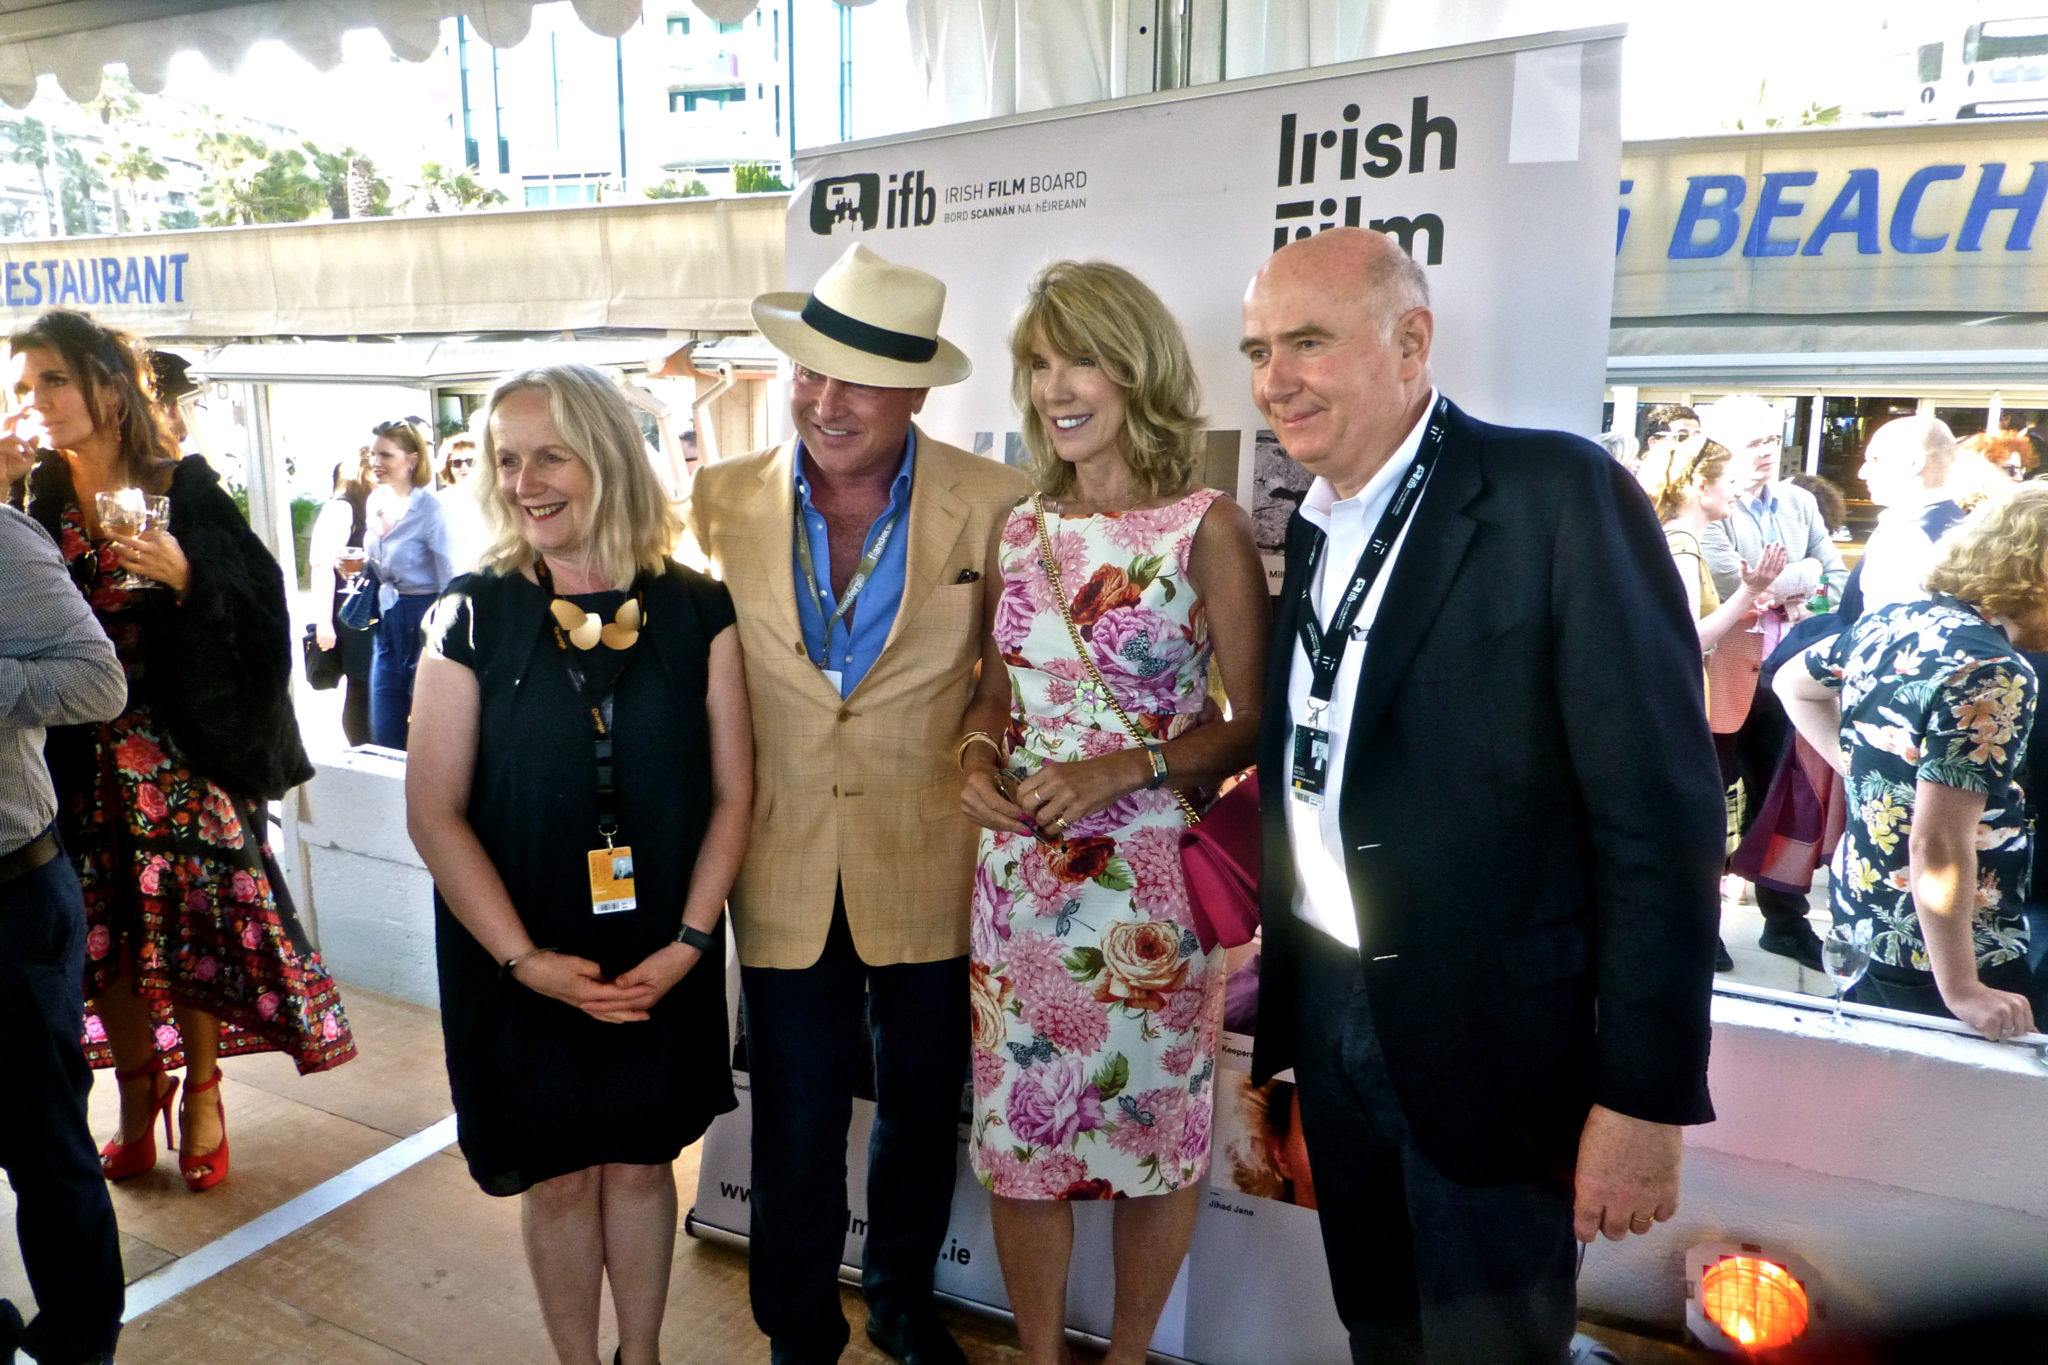 IFB Chair Annie Doona, Michael Flatley, Ambassador Patricia O'Brien, and IFB CEO James Hickey